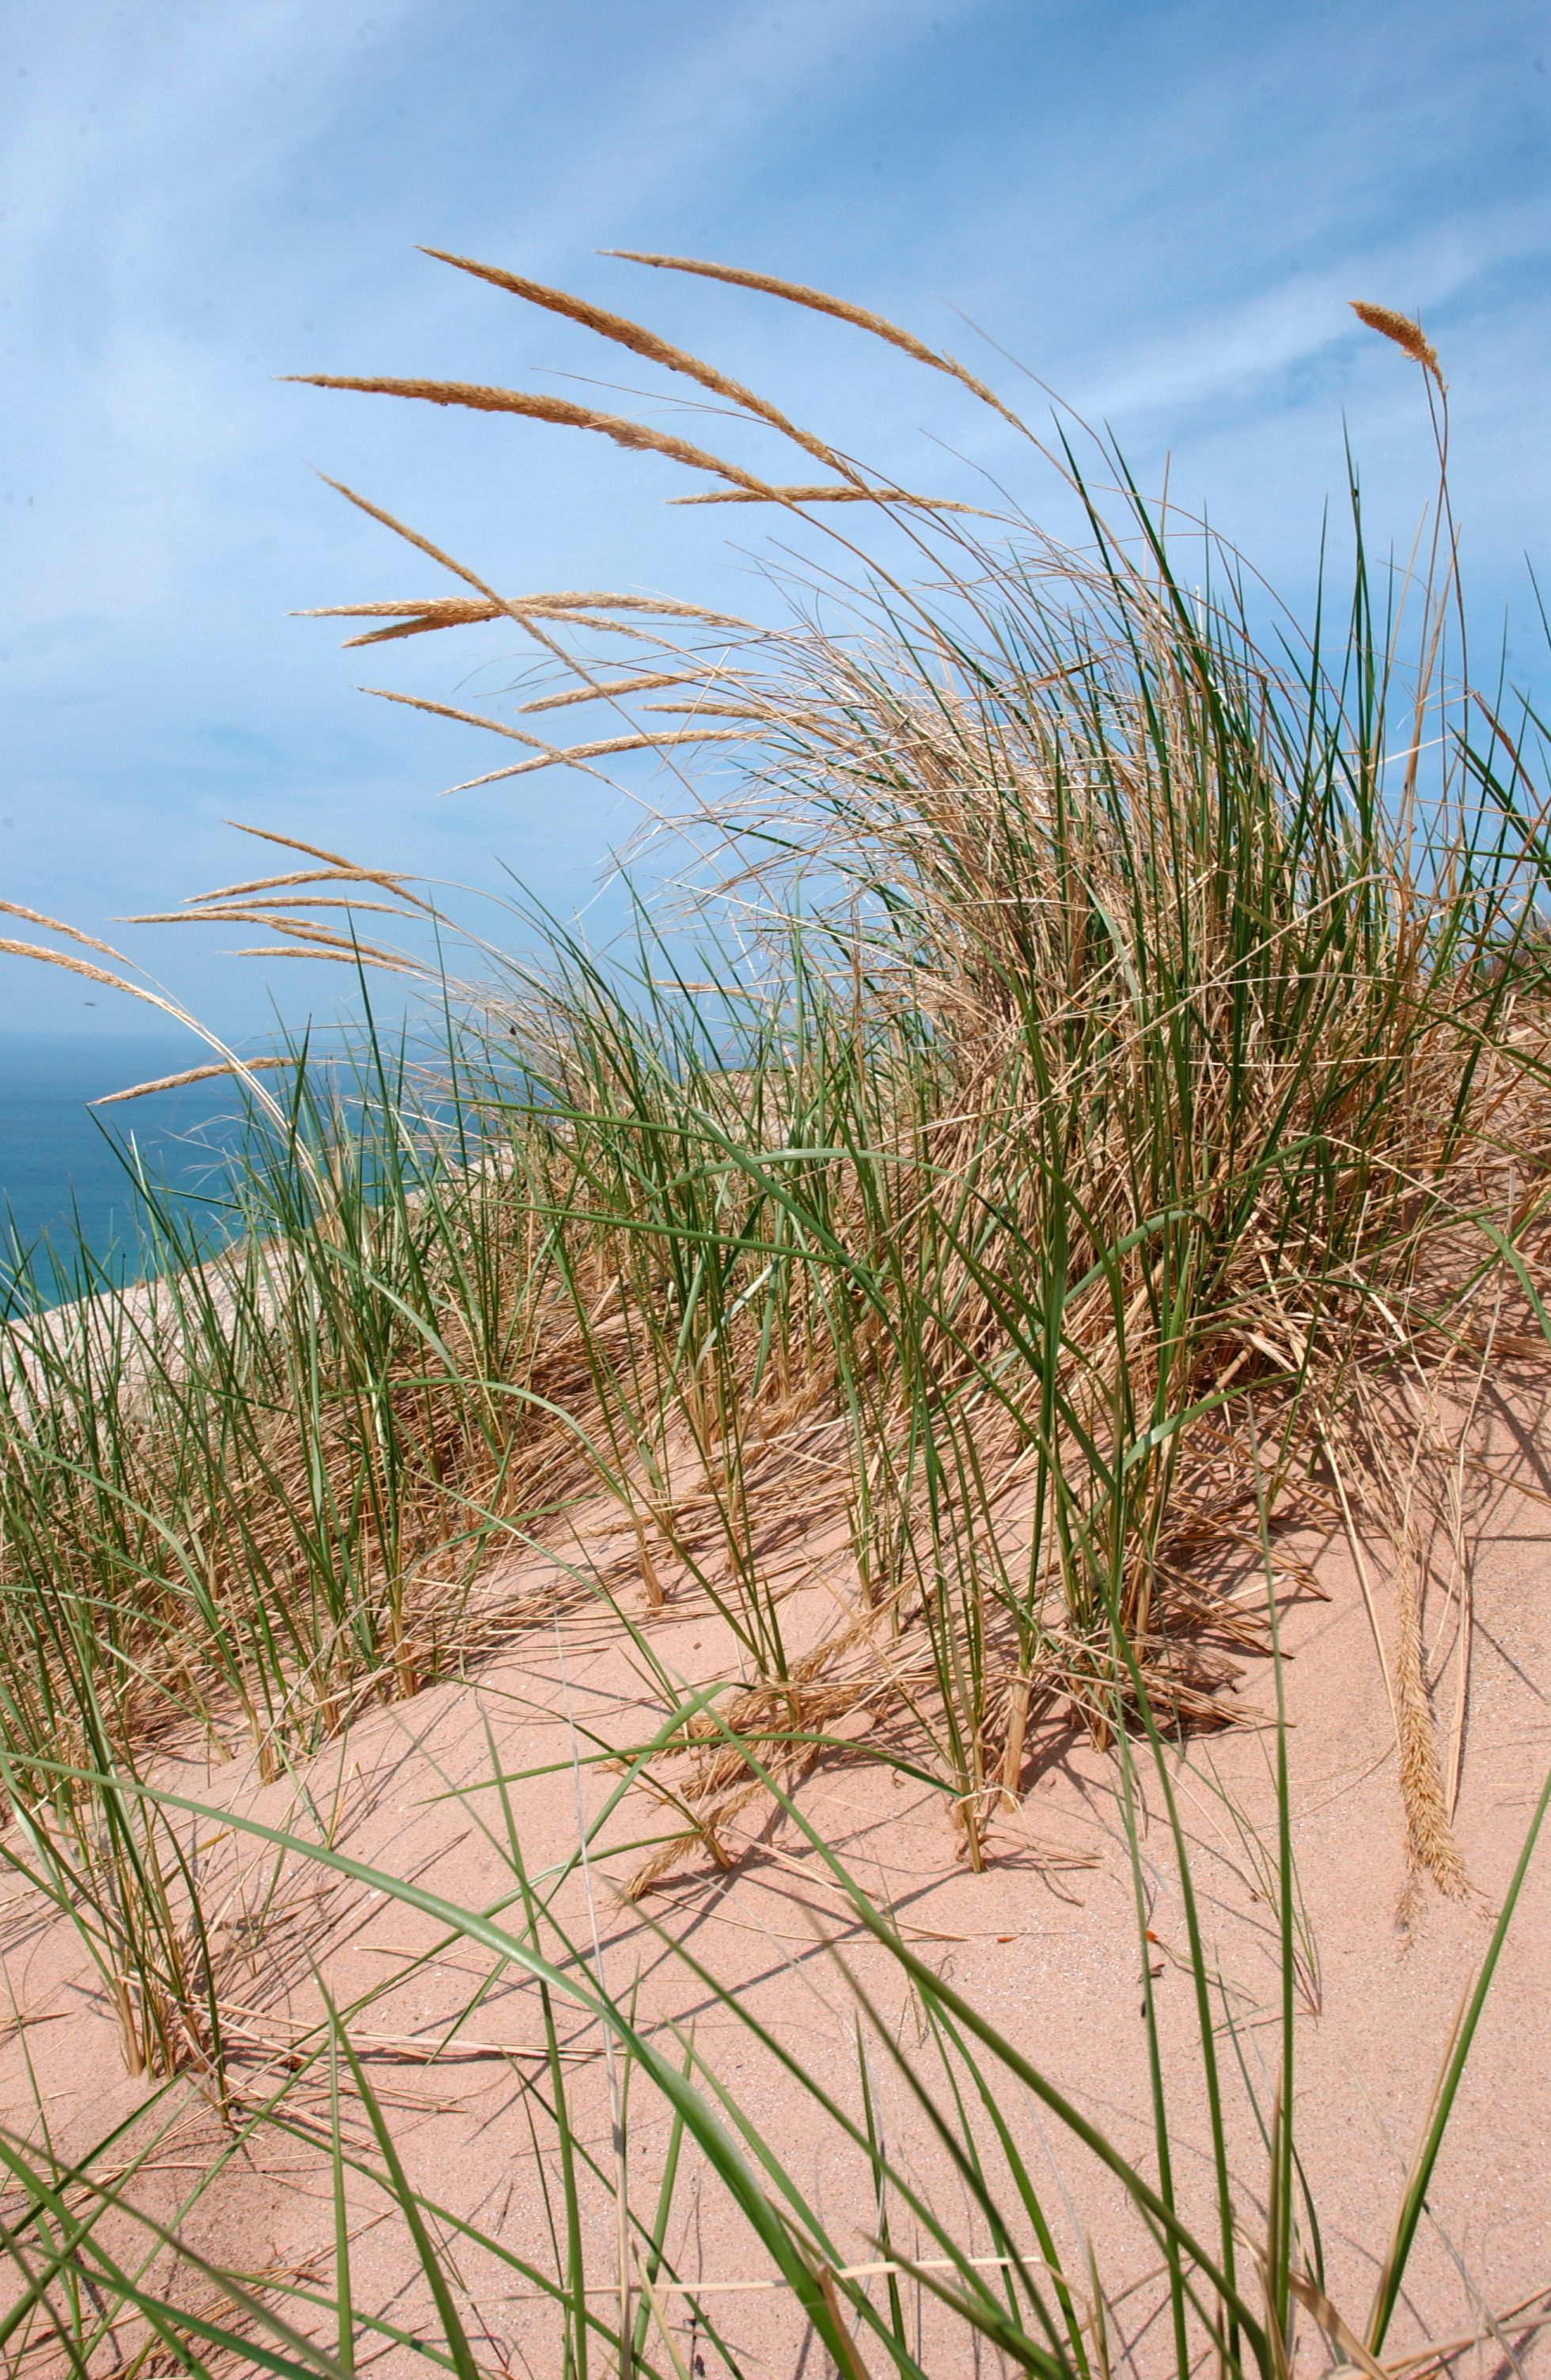 Sleeping Bear Dunes The Largest Living Moving Sand Dunes In North America Gorgeous Views Of Lake Mi Landscape Sleeping Bear Dunes Sleeping Bear Sand Dunes